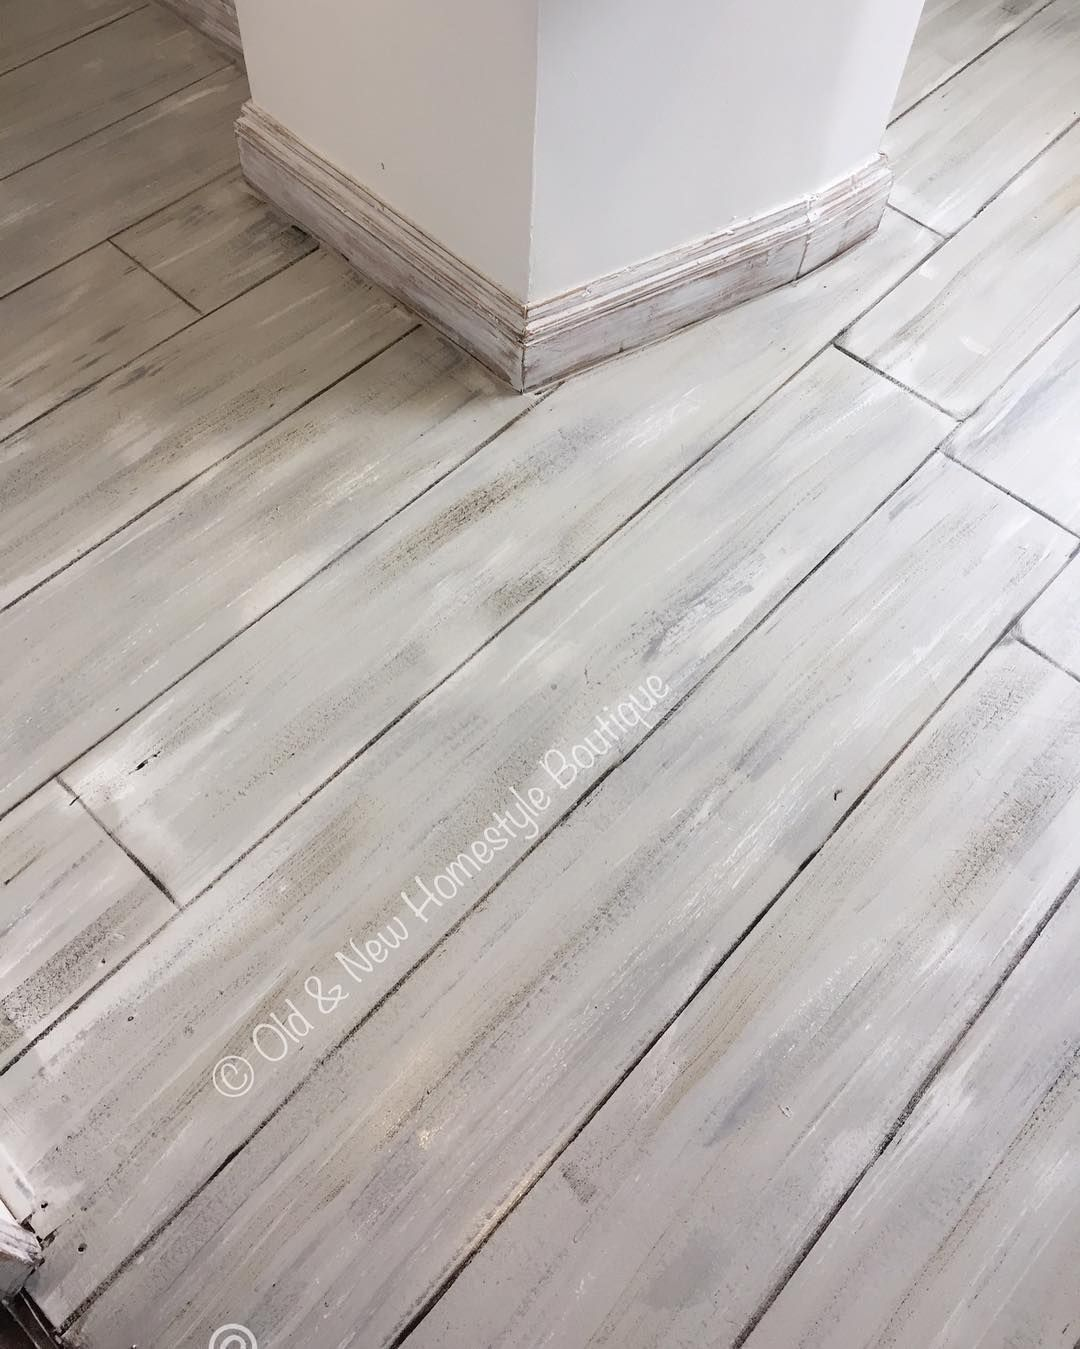 30 Fabulous Laminate Floors Adding New Patterns And Colors To Modern Floor Decoration Flooring Wood Laminate Flooring Wood Floor Colors